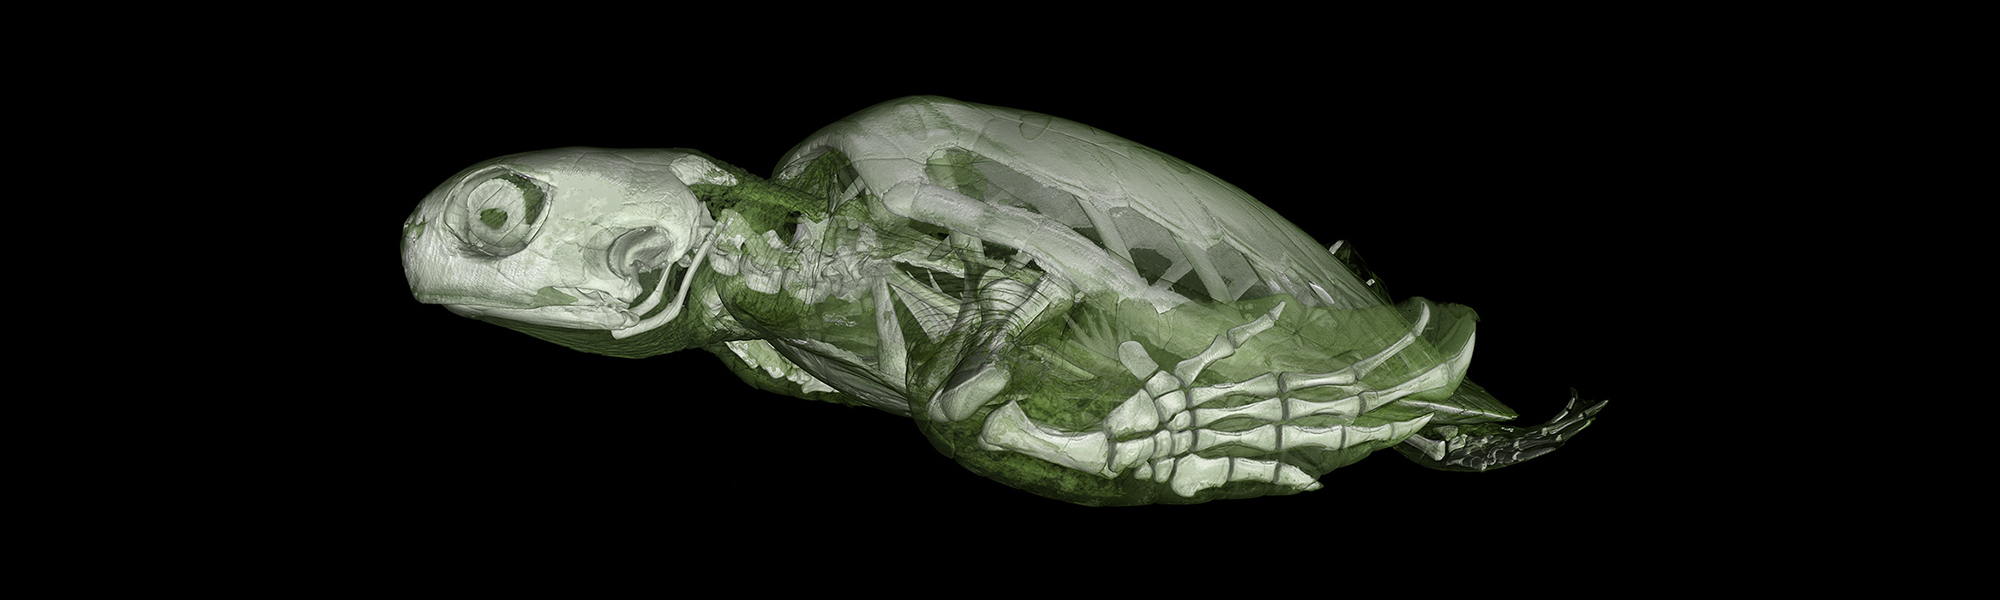 CT scan of a green sea turtle